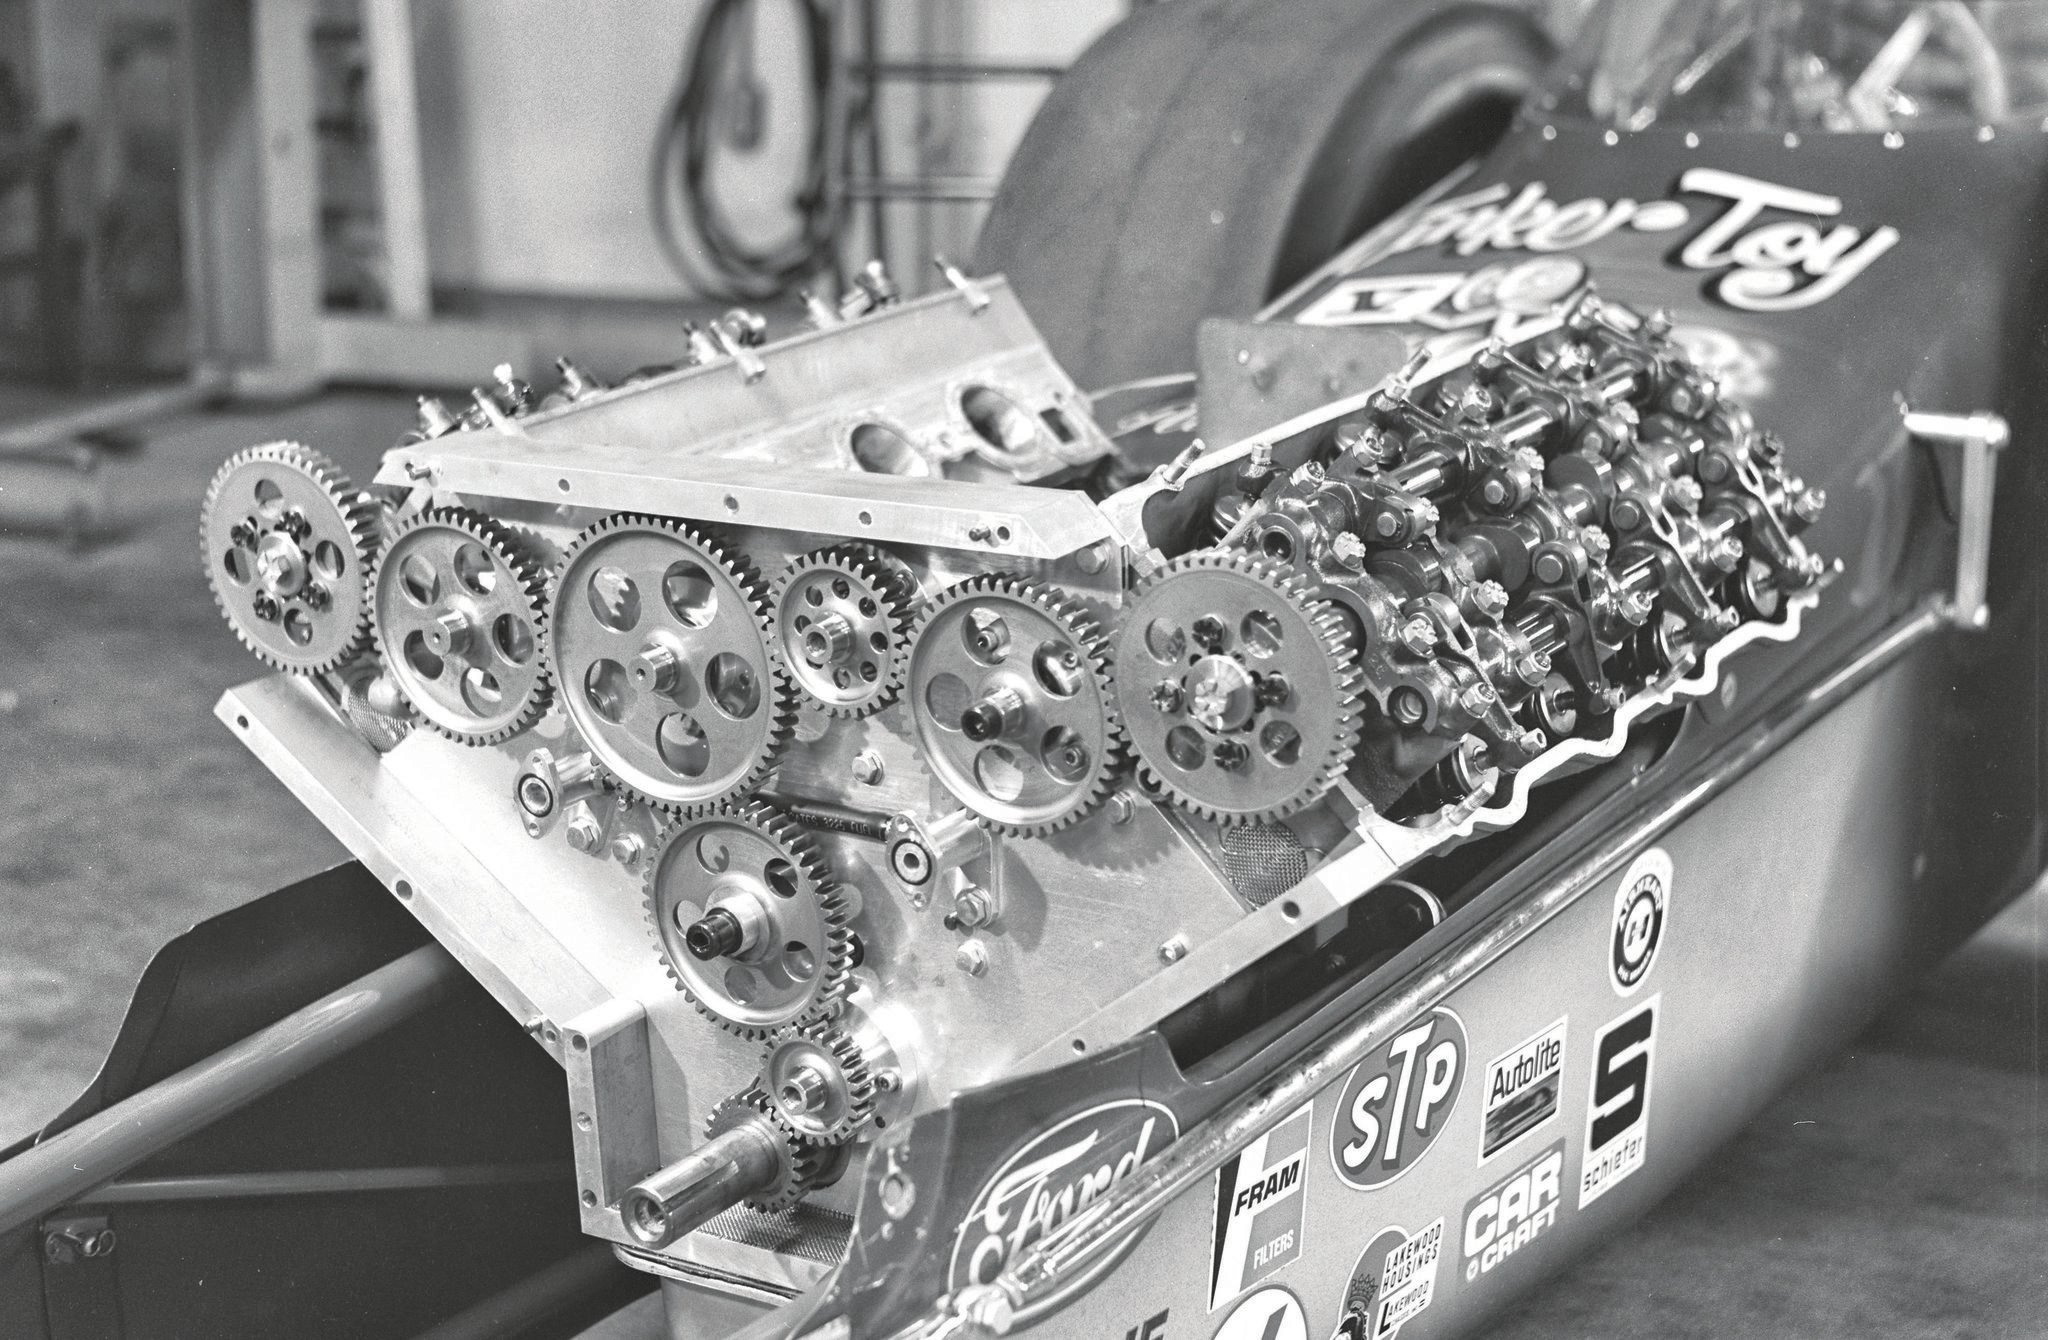 "Maybe the farthest advancement in the technical evolution of the SOHC was in Pete Robinson's geardrive development, seen here in March 1969 on his ""Tinker Toy dragster. A true Cammer believer, he was tragically killed in 1971 qualifying at the Winternationals, experimenting with aerodynamics, which caused the crash. By then, most all of the Cammers had been replaced with Chrysler Hemis."